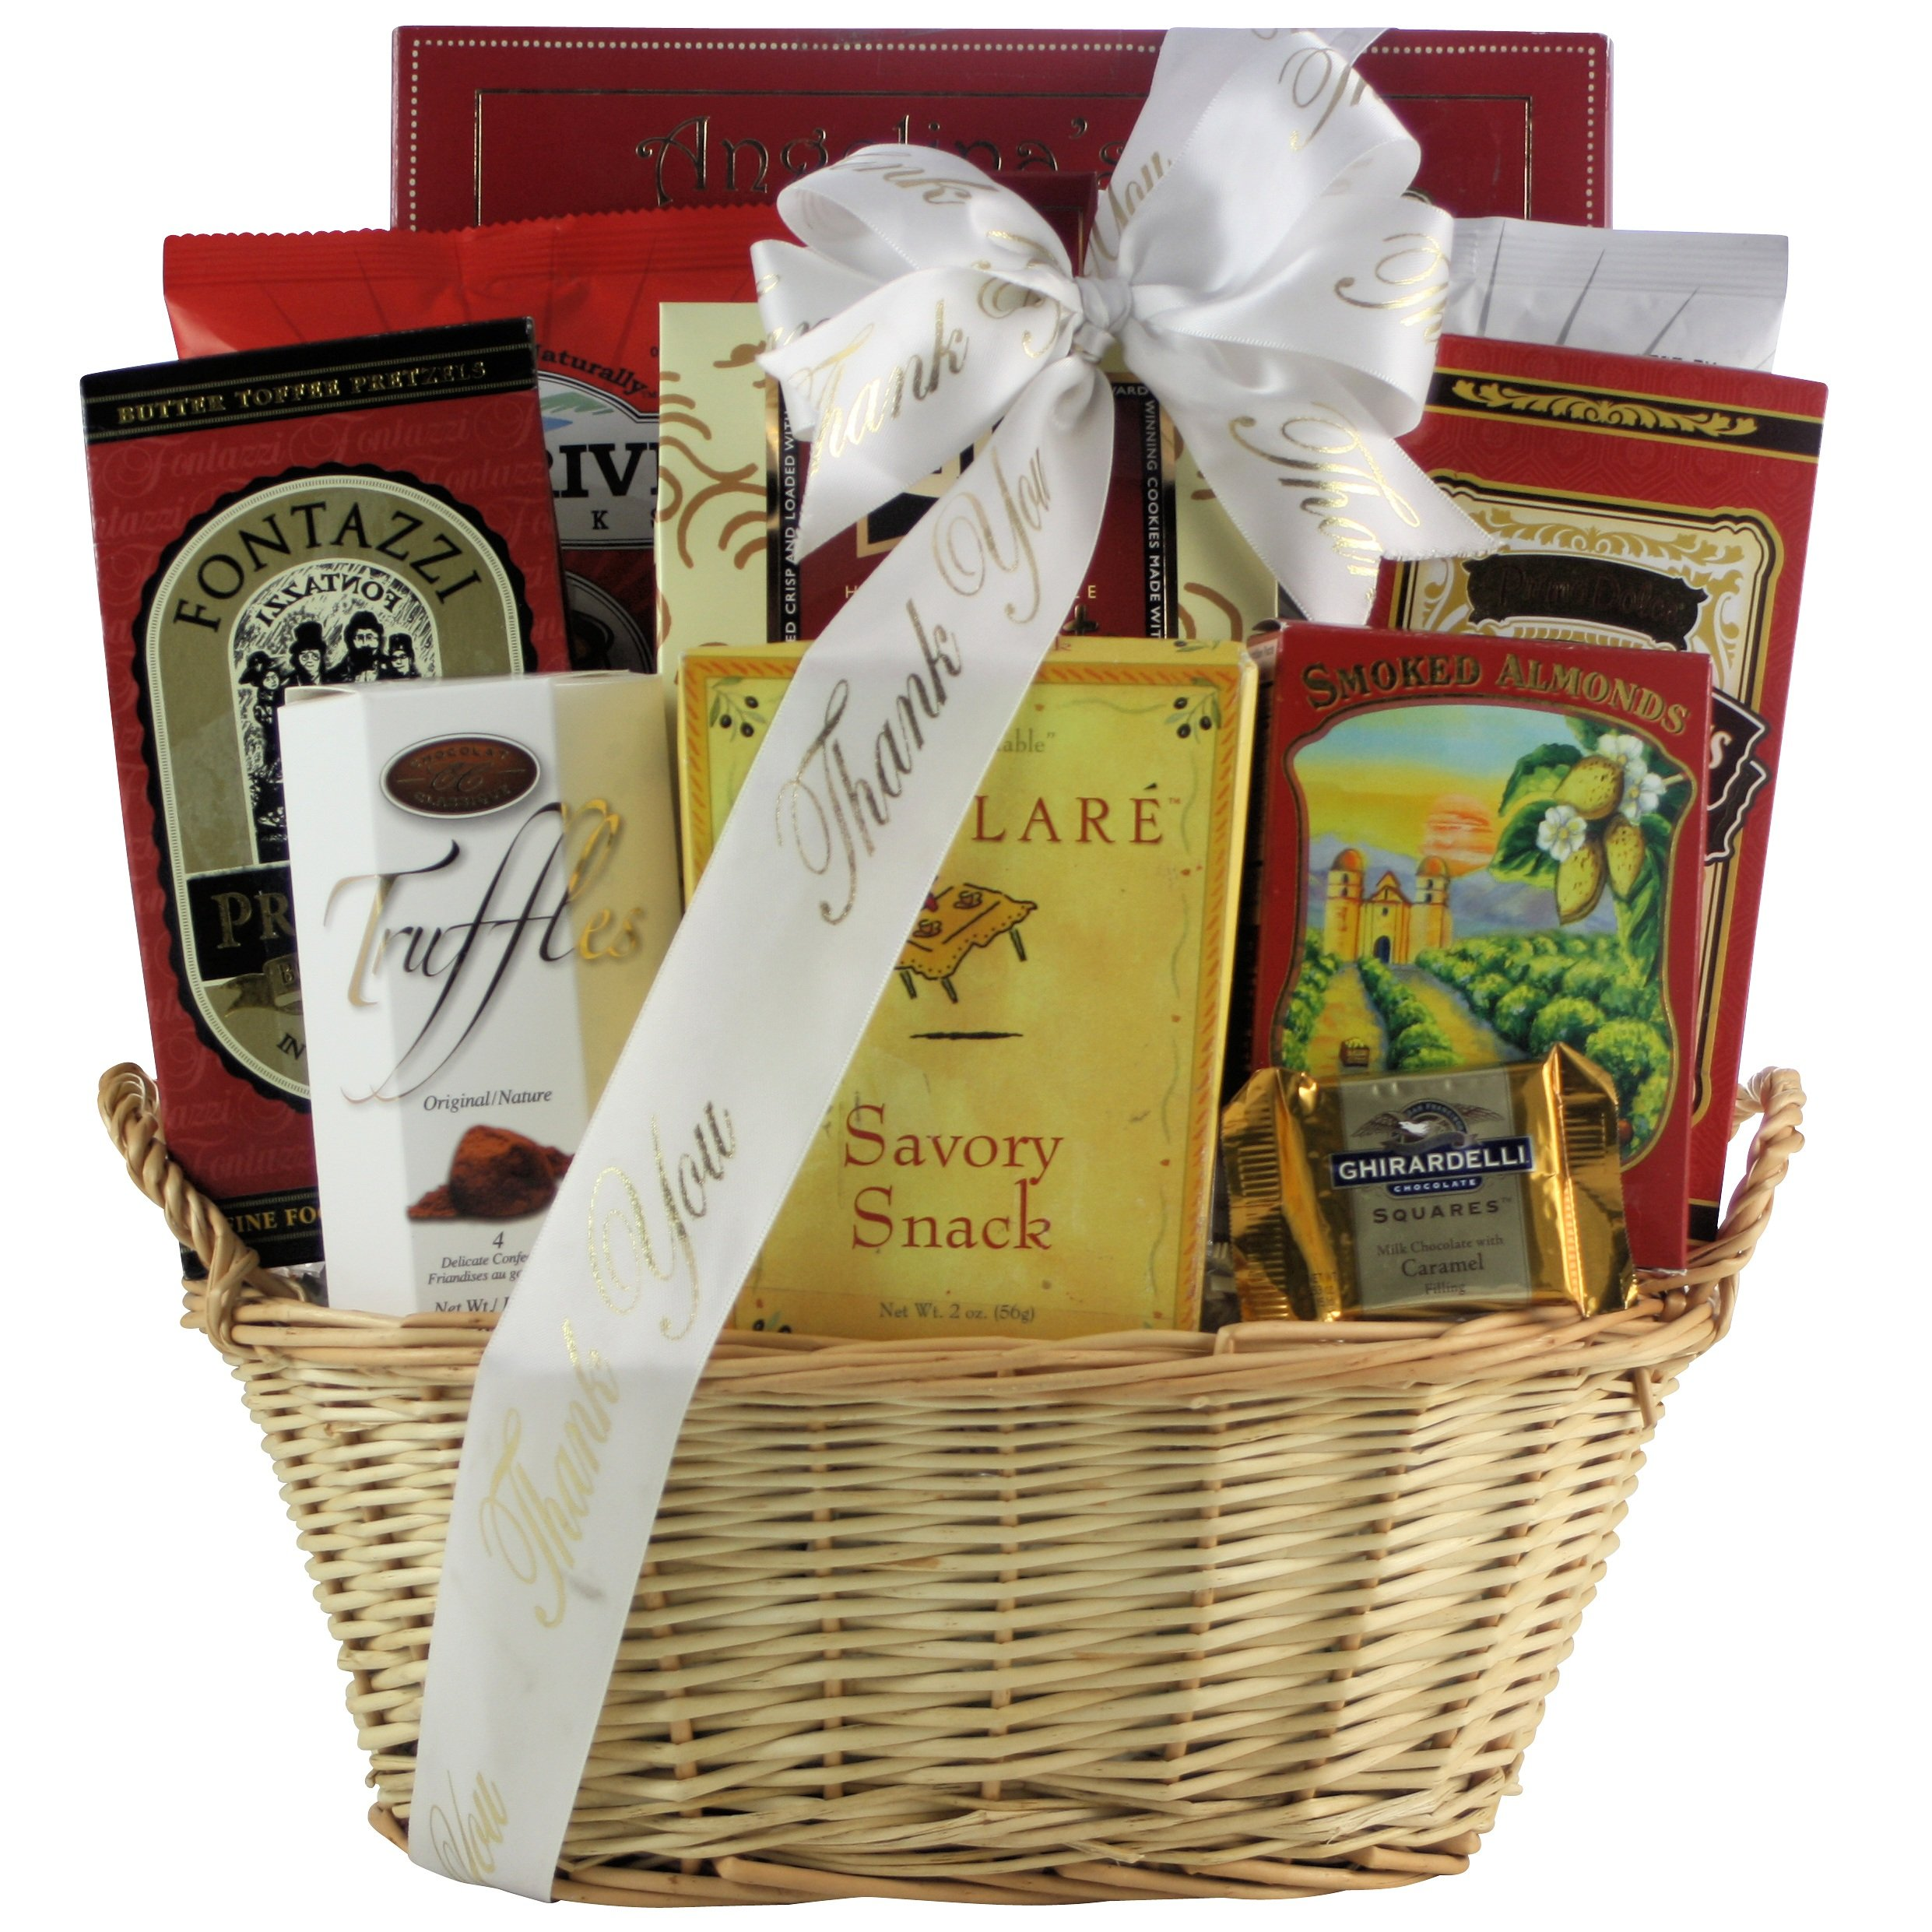 GreatArrivals Snack Attack Thank You Snack Basket, Small, 3 Pound